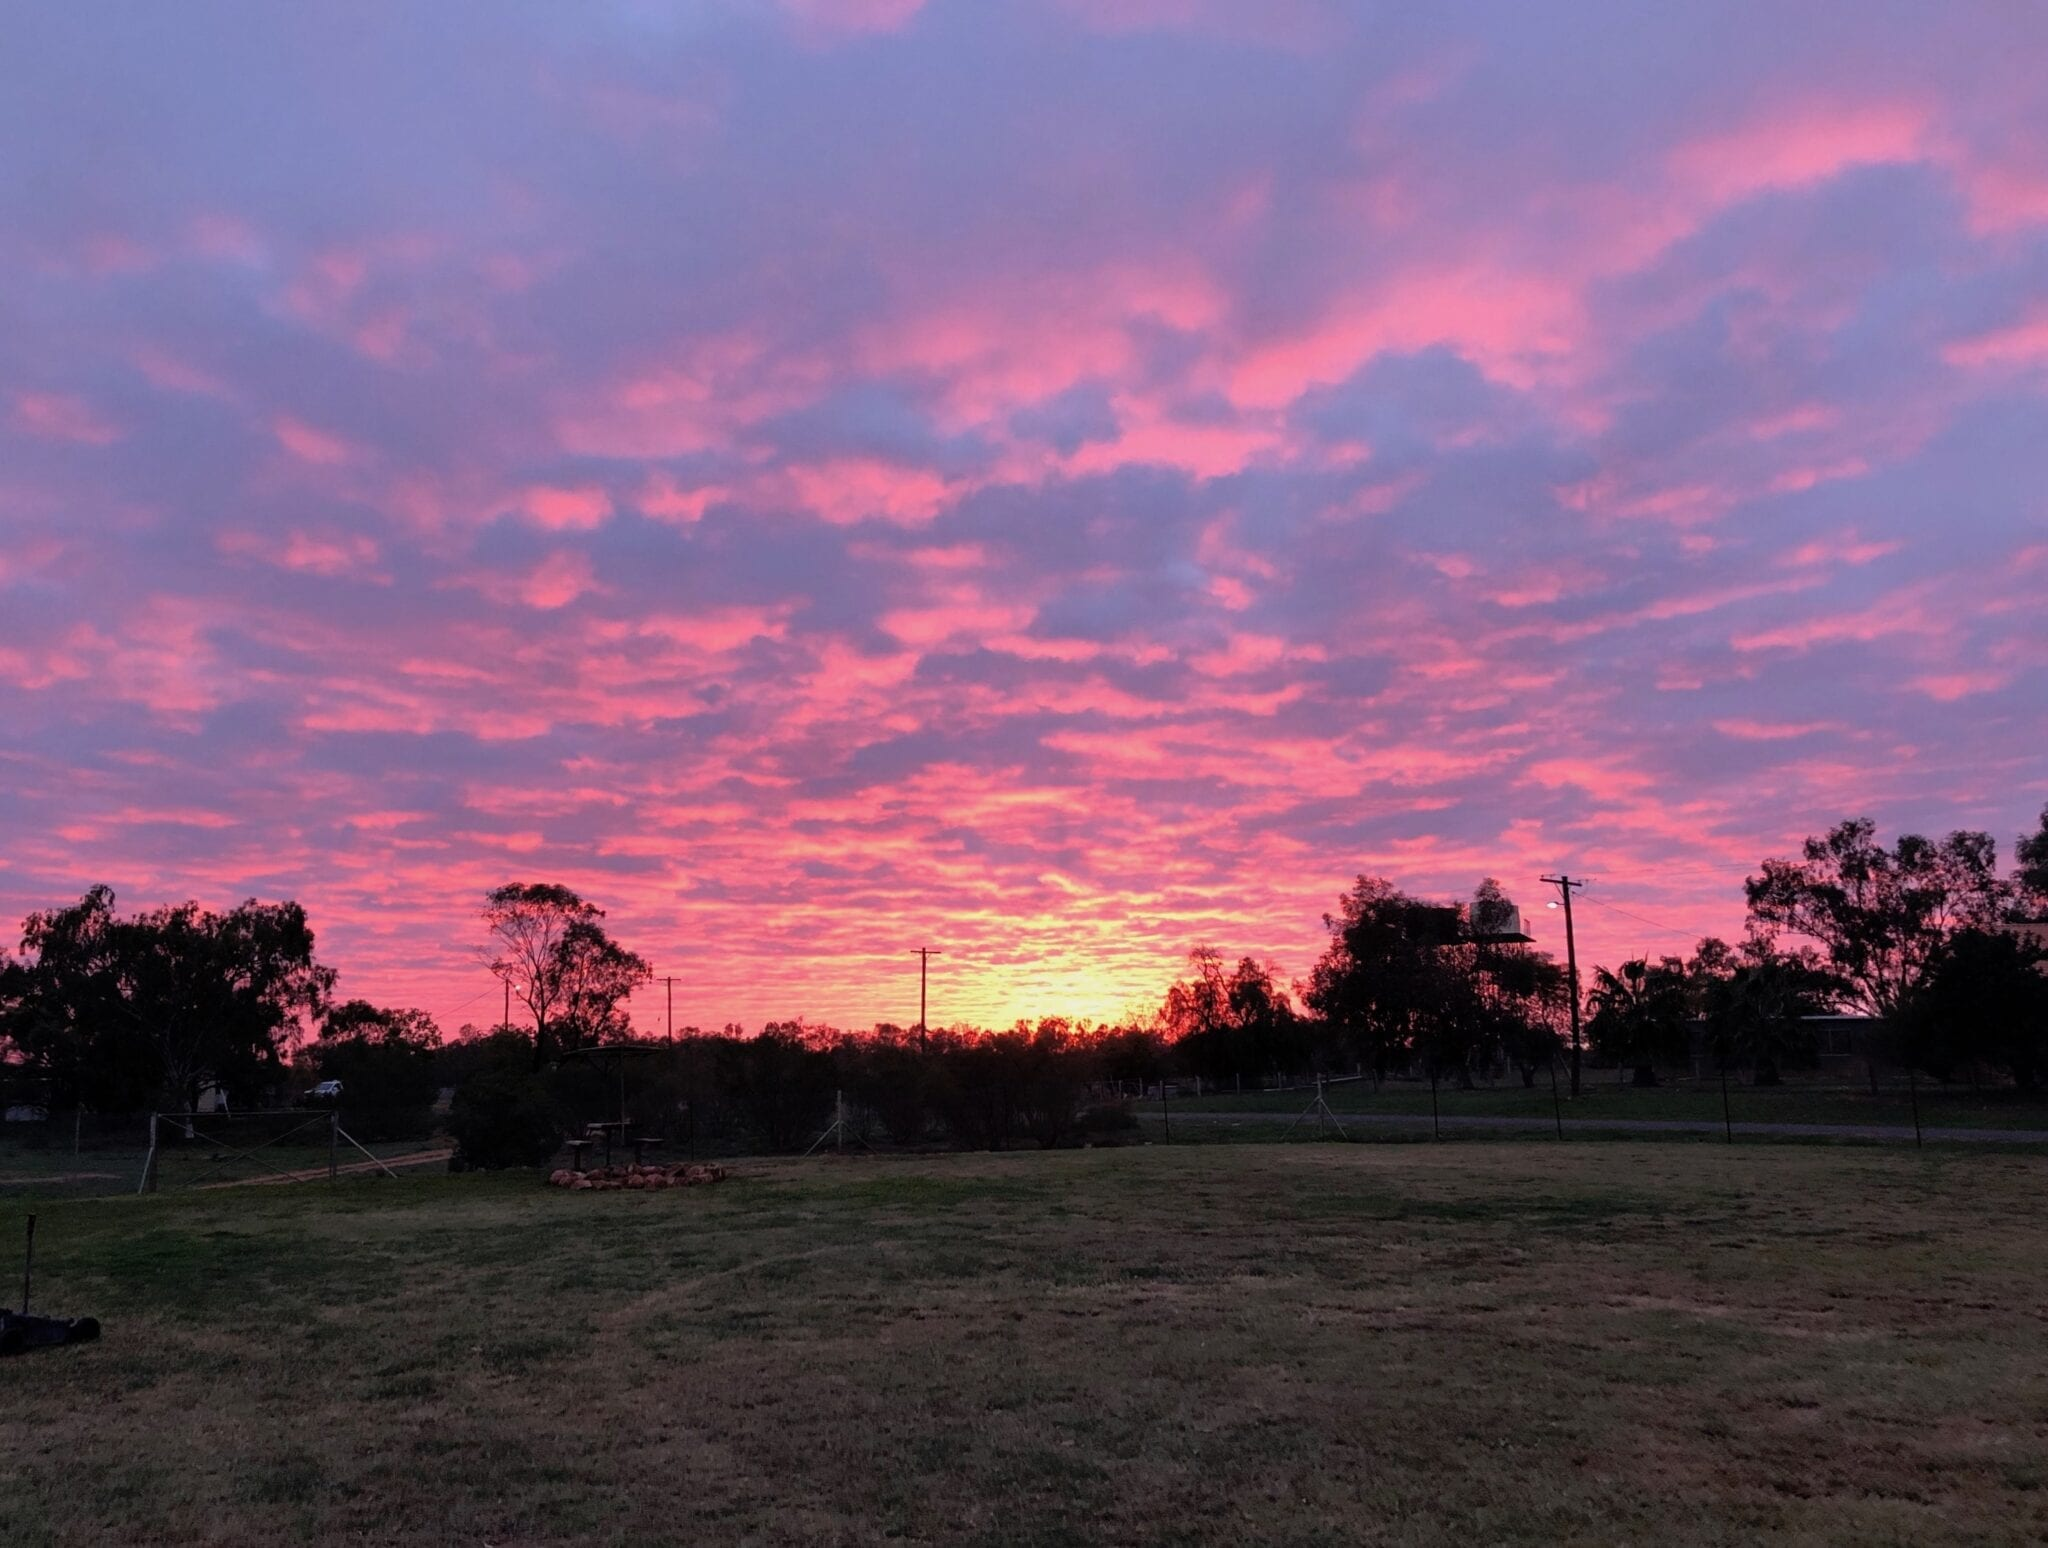 An incredible pink sunset at Wanaaring, NSW. The Cut Line, NSW.